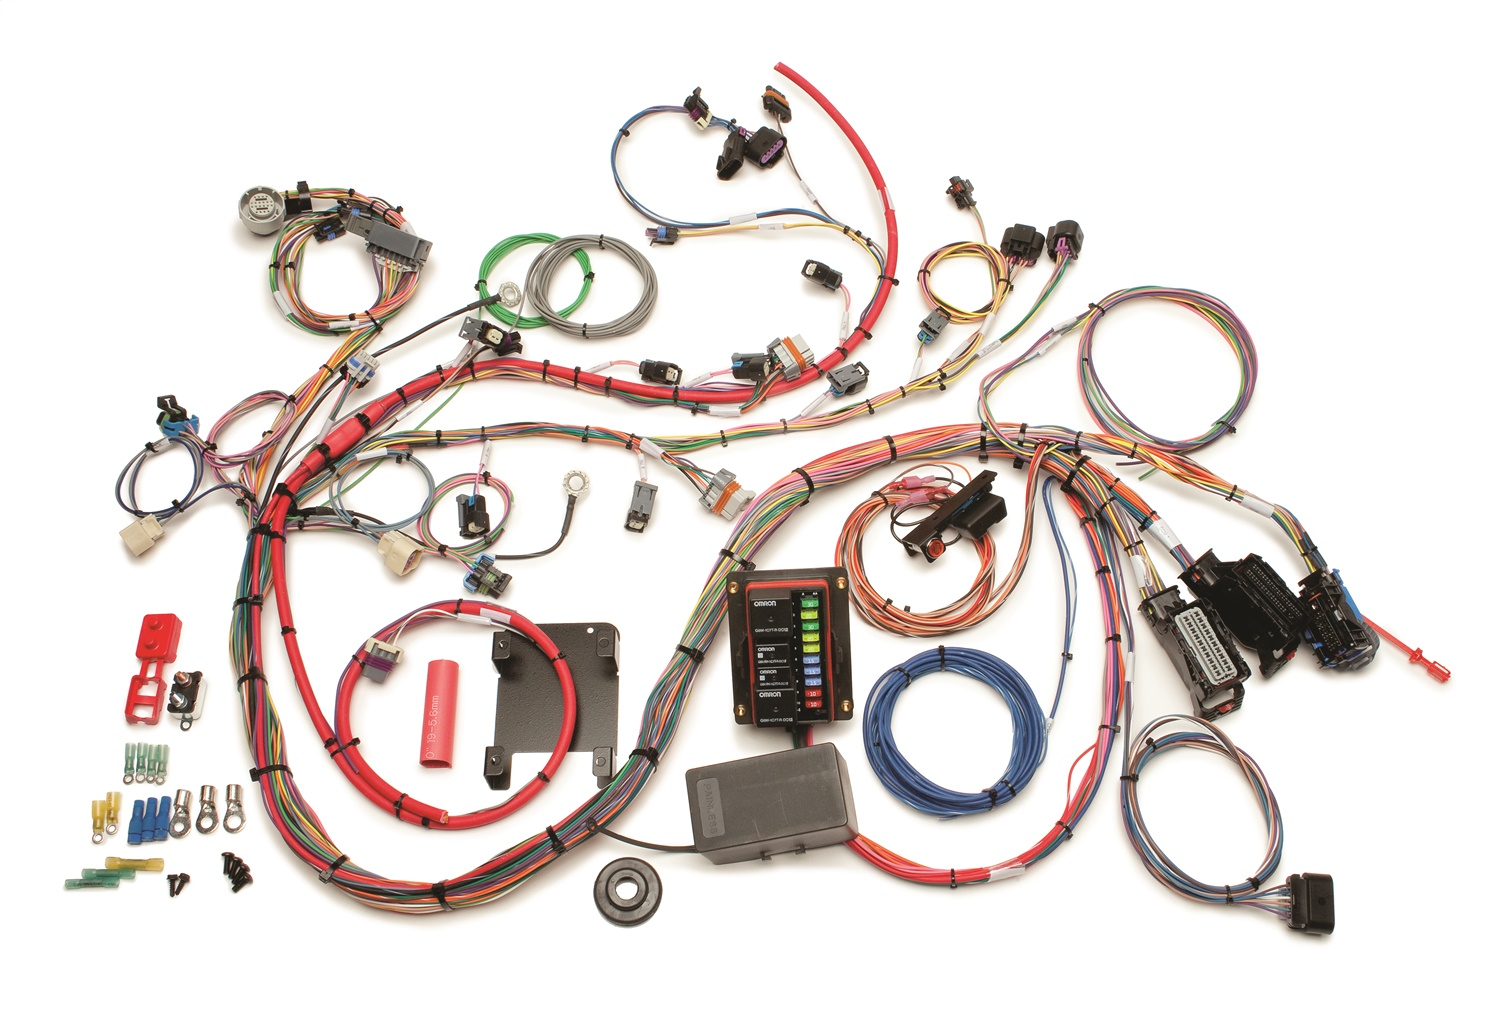 painless wiring harness ls2 house wiring diagram symbols \u2022 painless wiring ls1 painless wiring 60524 fuel injection wiring harness ebay rh ebay com chevy wiring harness diagram lt1 wiring harness